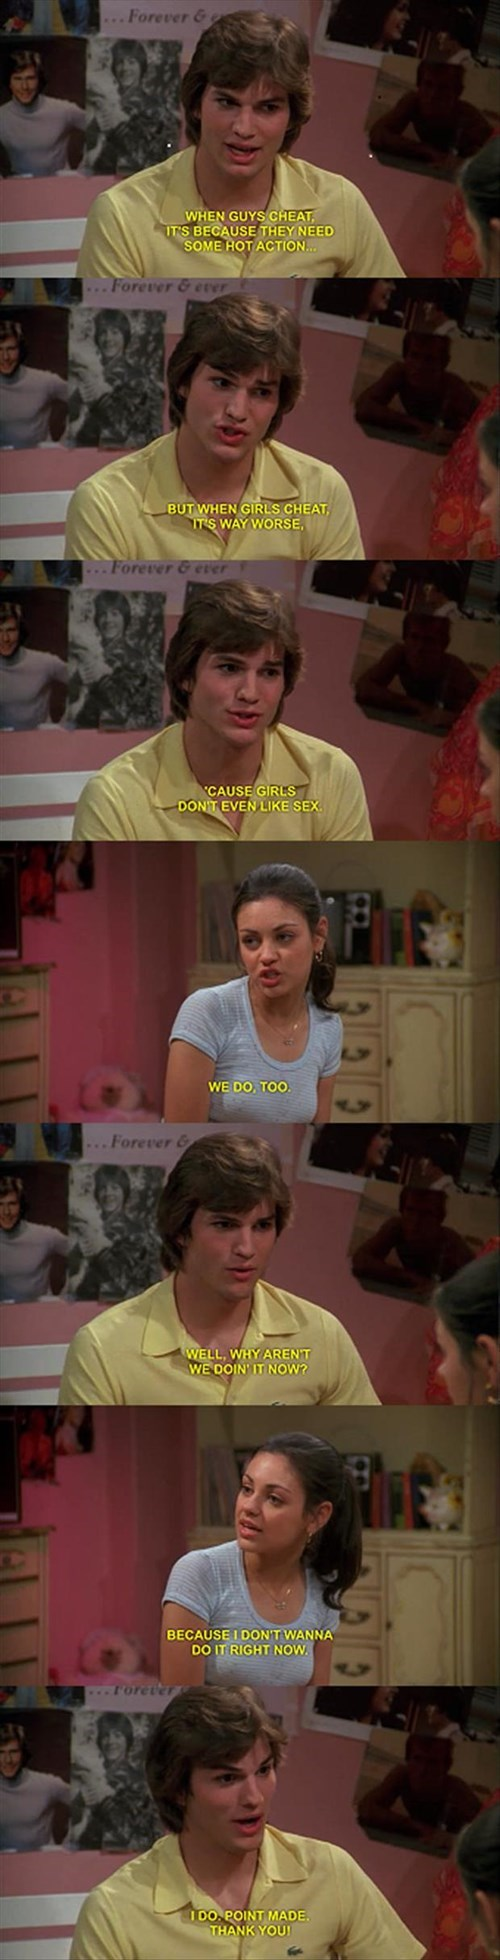 sex that 70s show case in point men vs women - 8046906880